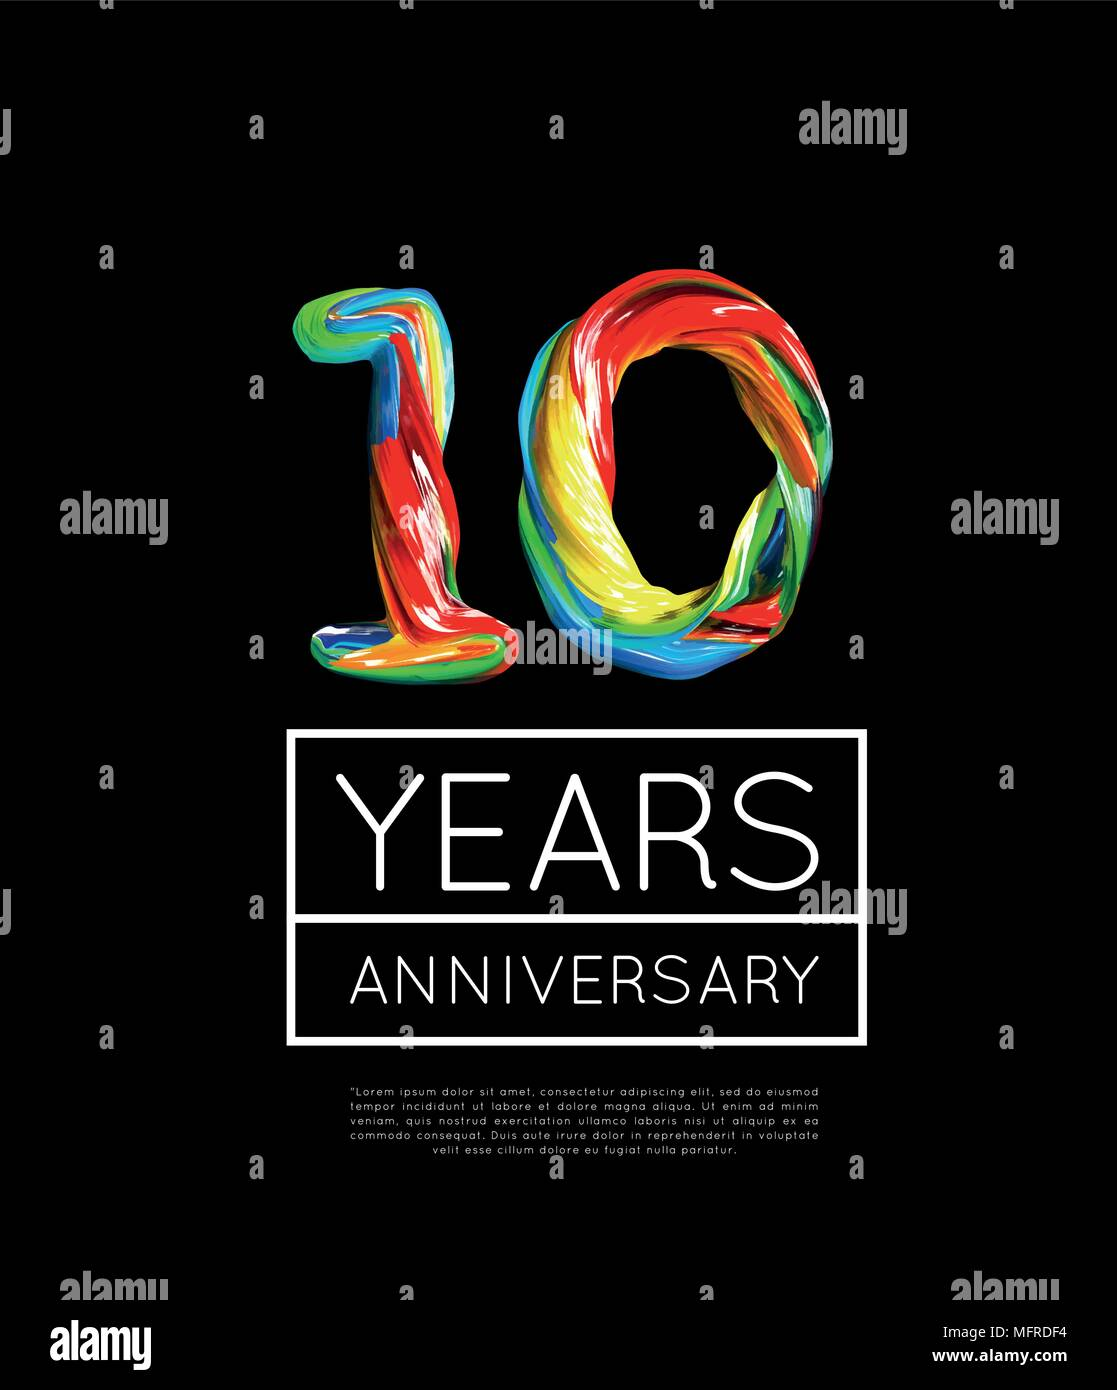 10th Anniversary, congratulation for company or person on black background - Stock Vector